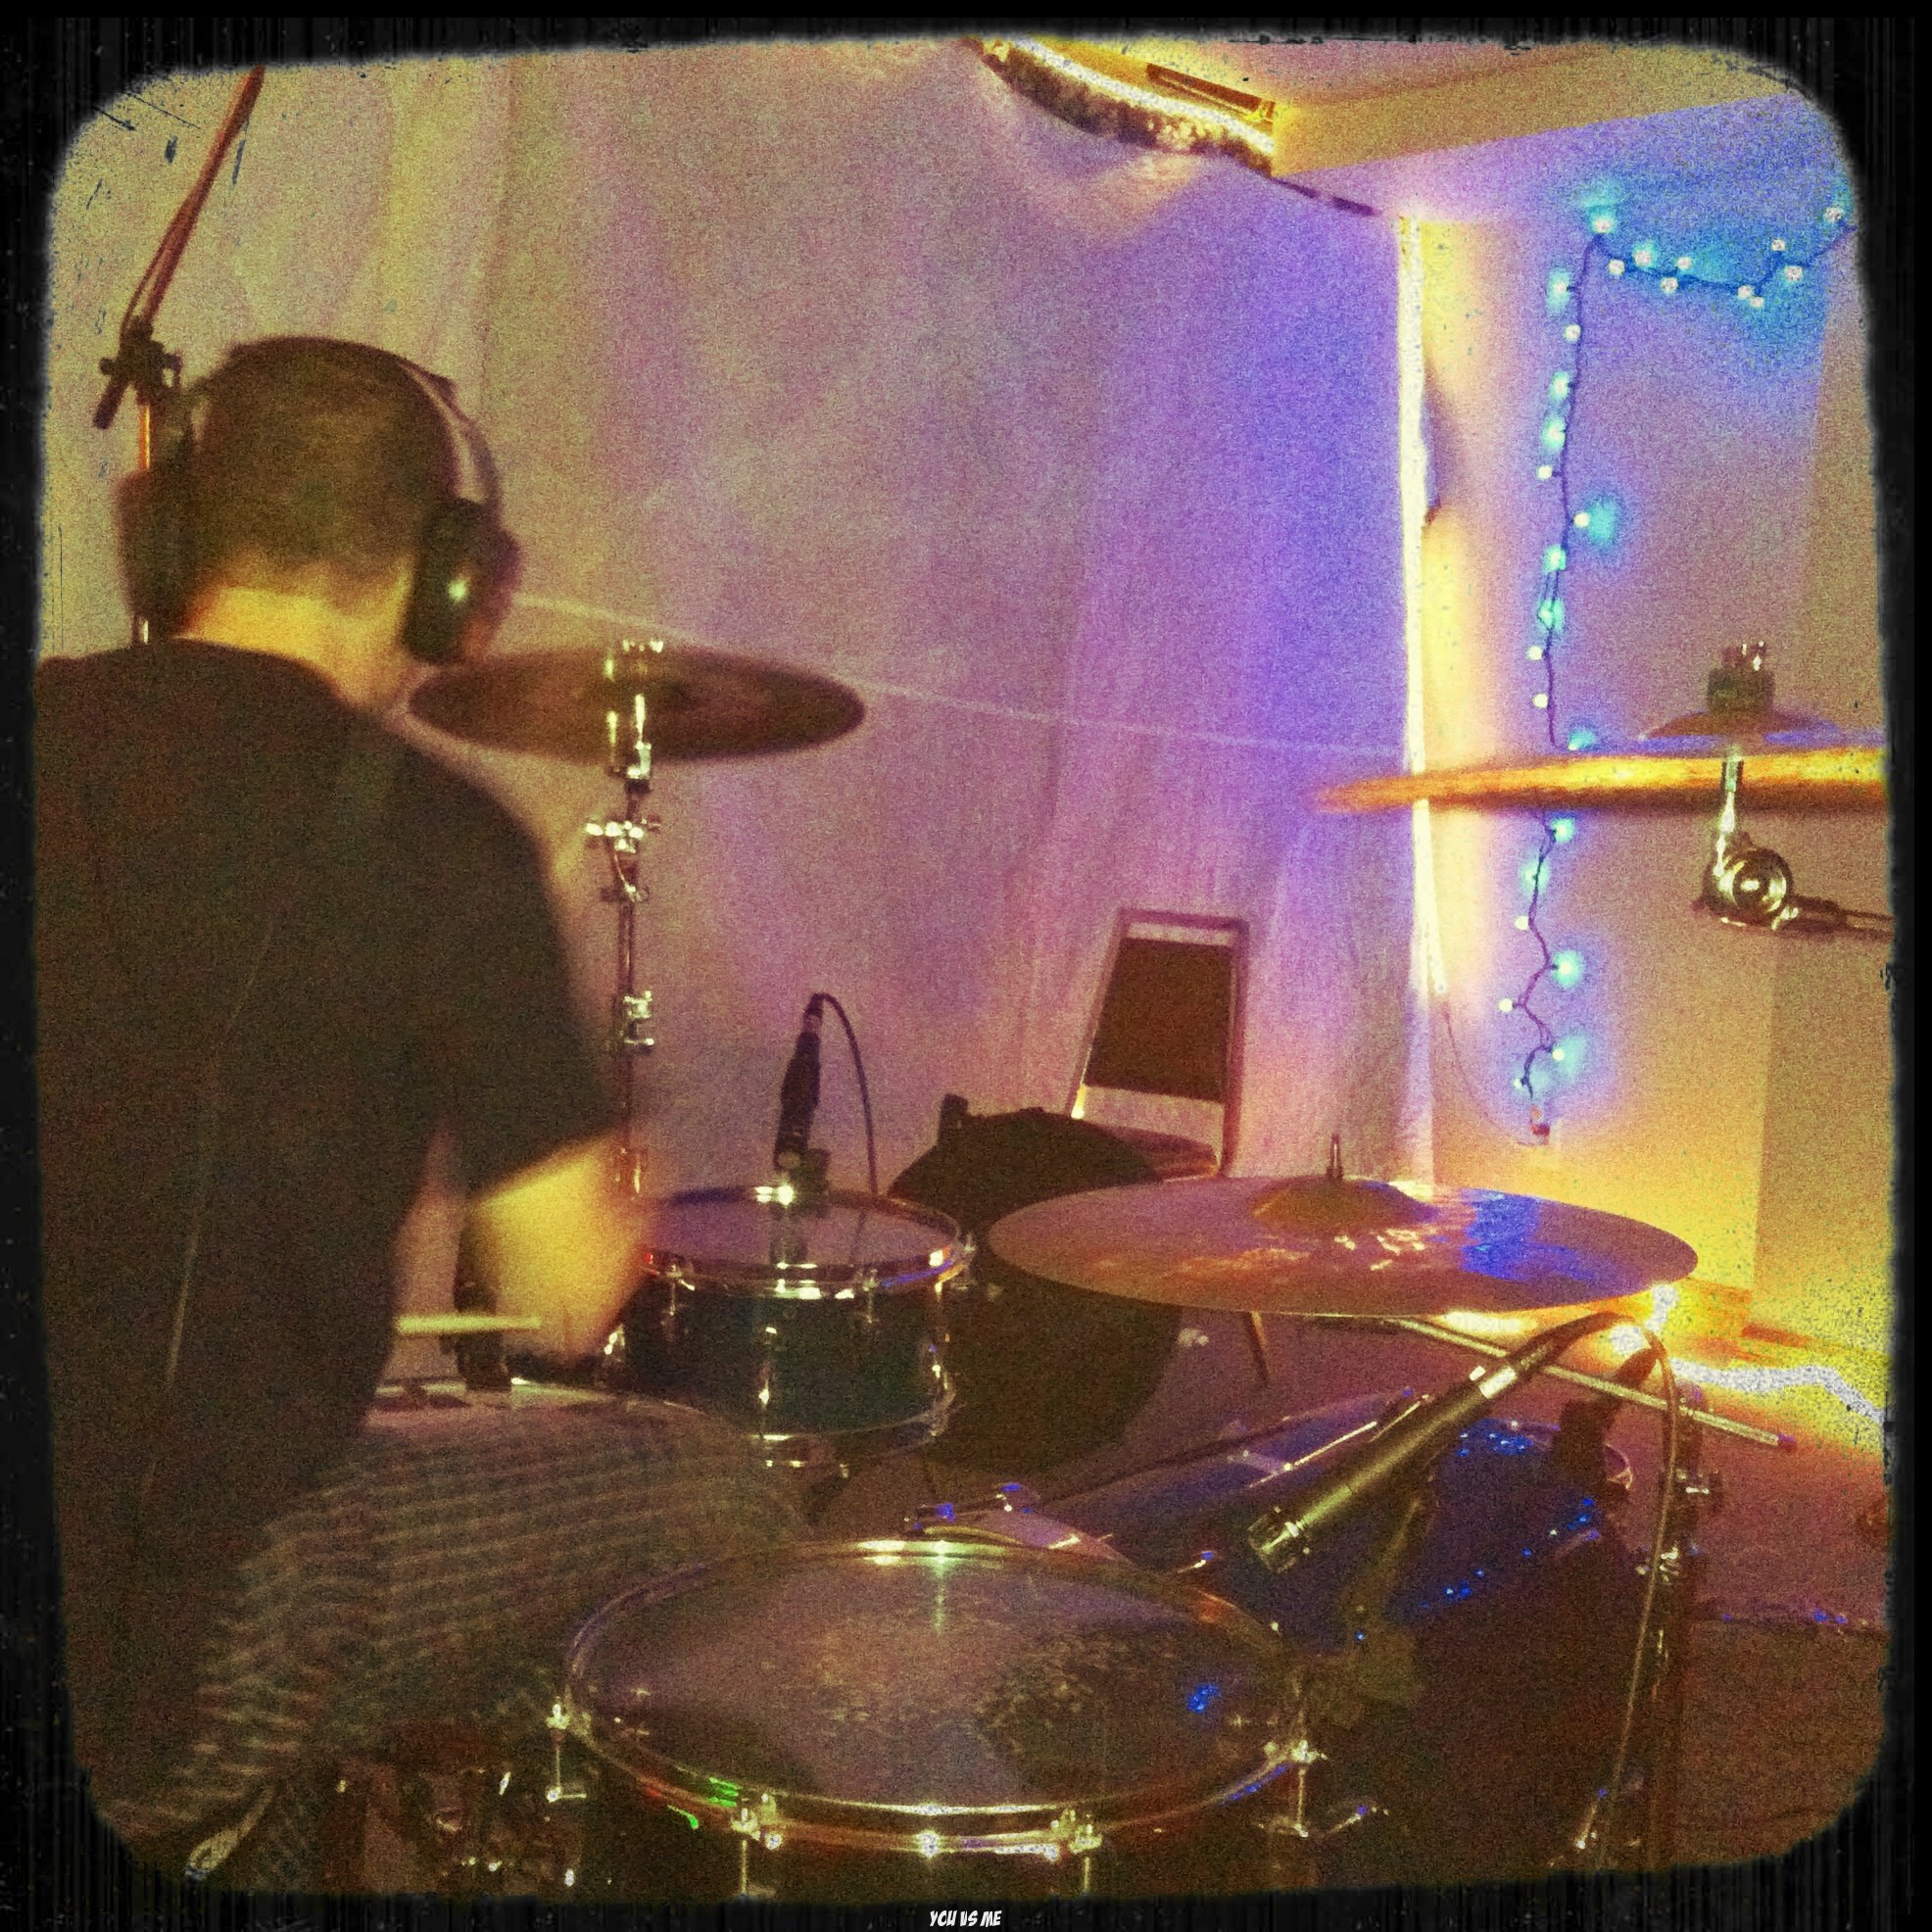 Day 2 - Recording Drum Tracks